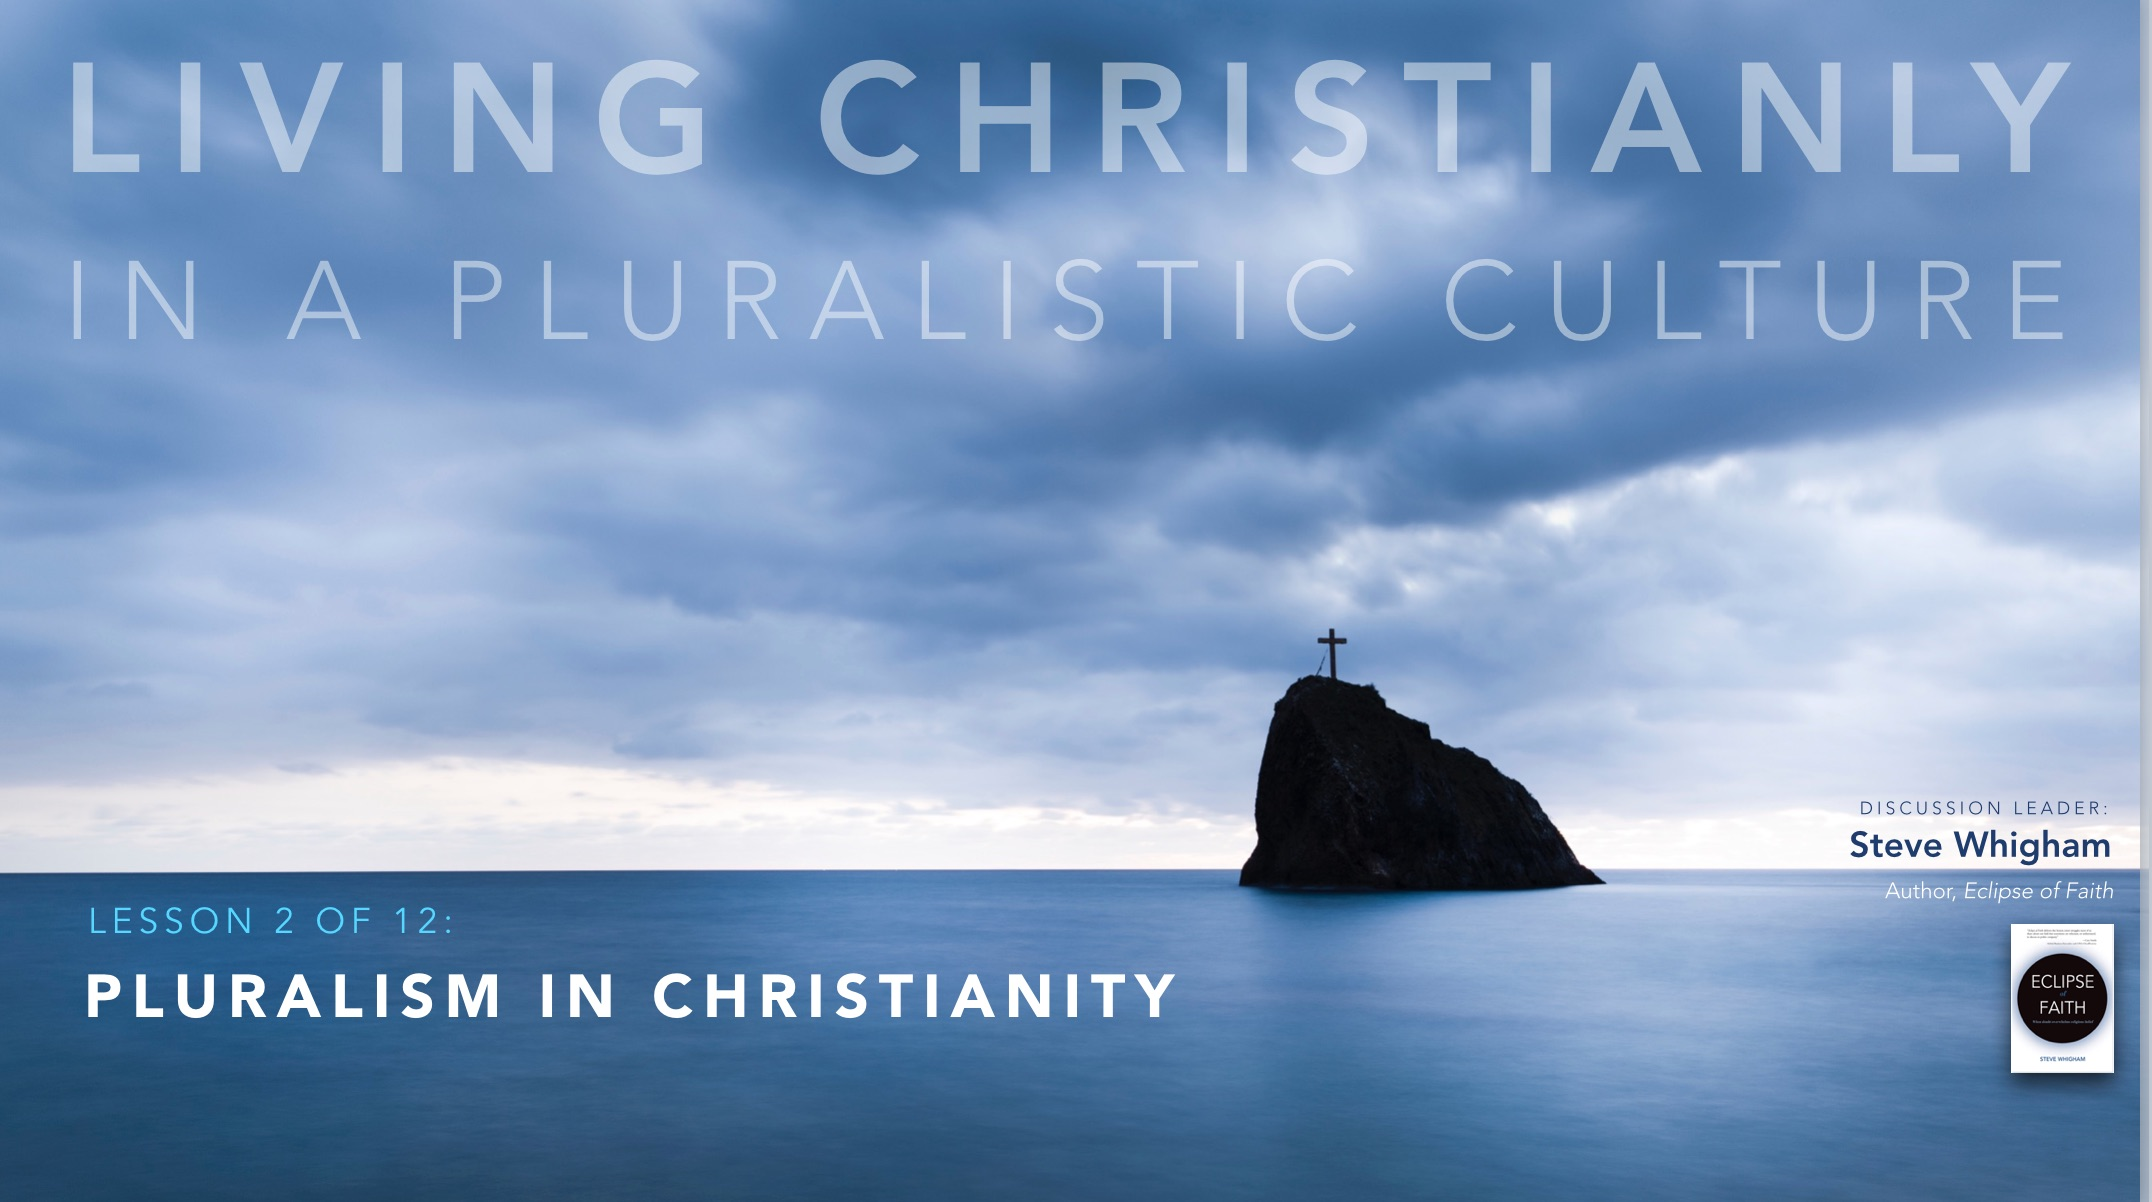 Living Christianly in a Pluralistic Culture Talk #2: Pluralism in Christianity